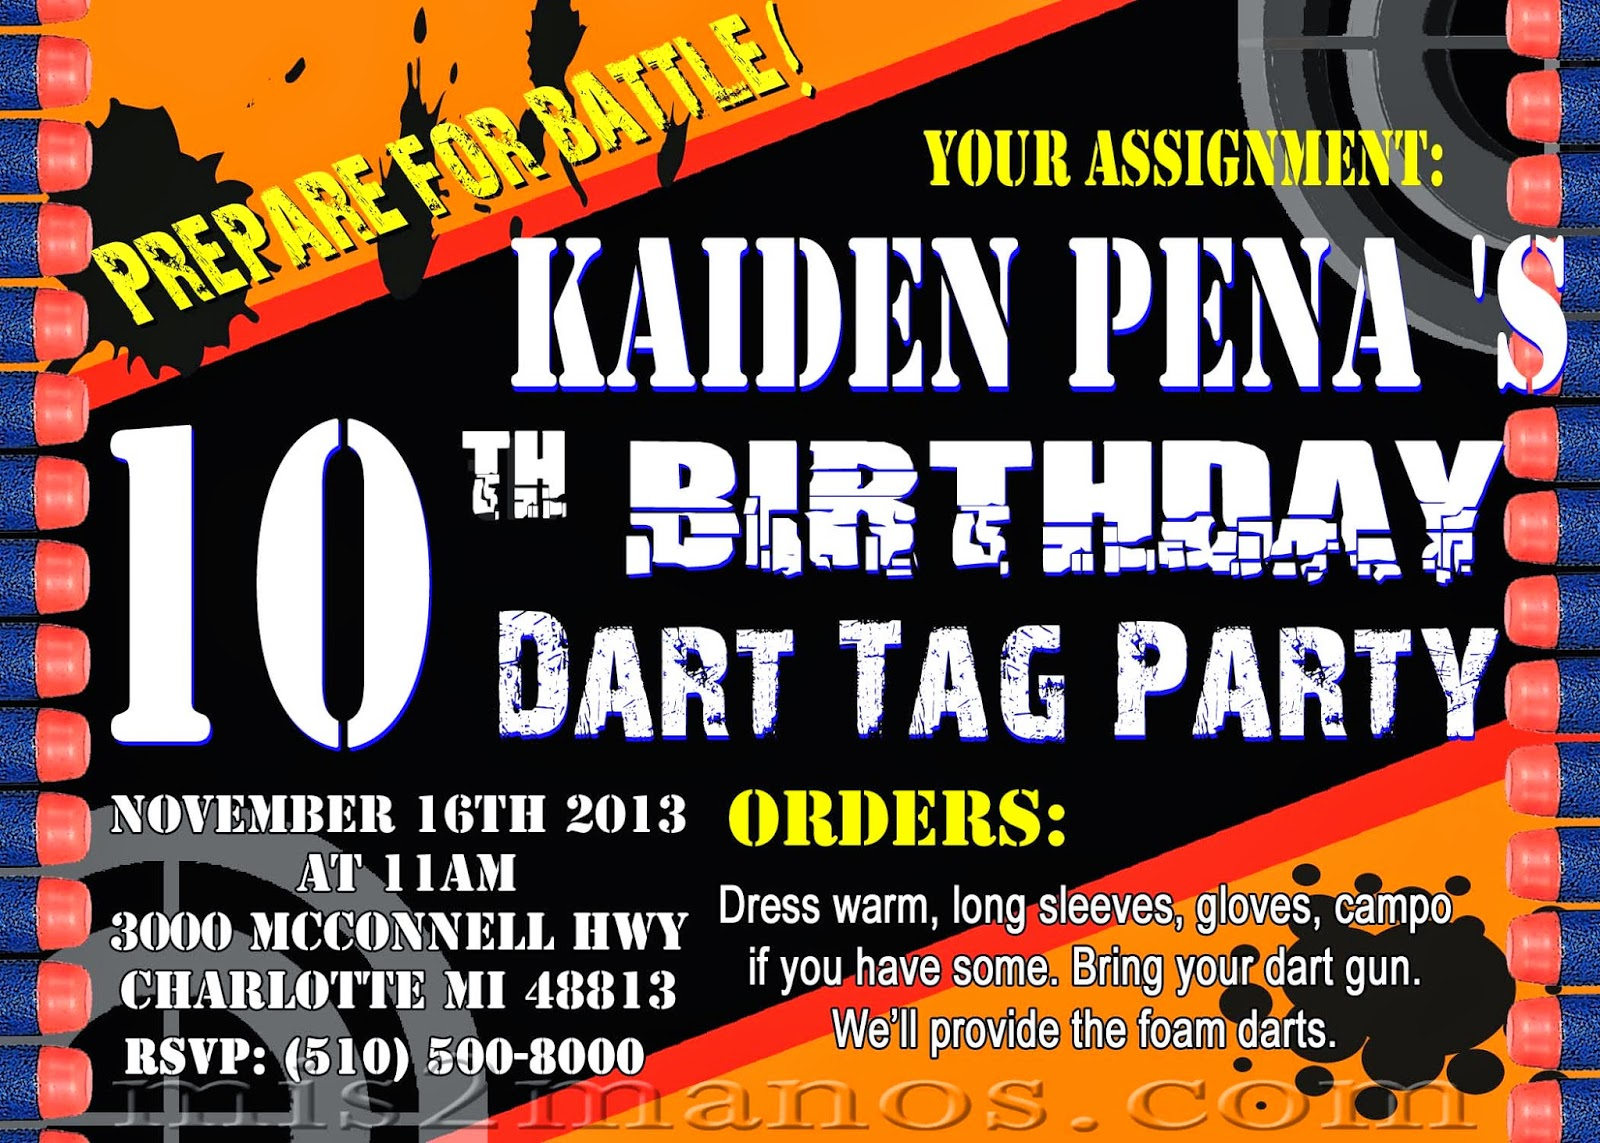 Mis 2 Manos: Made by My Hands: Nerf Dart Party Invitations